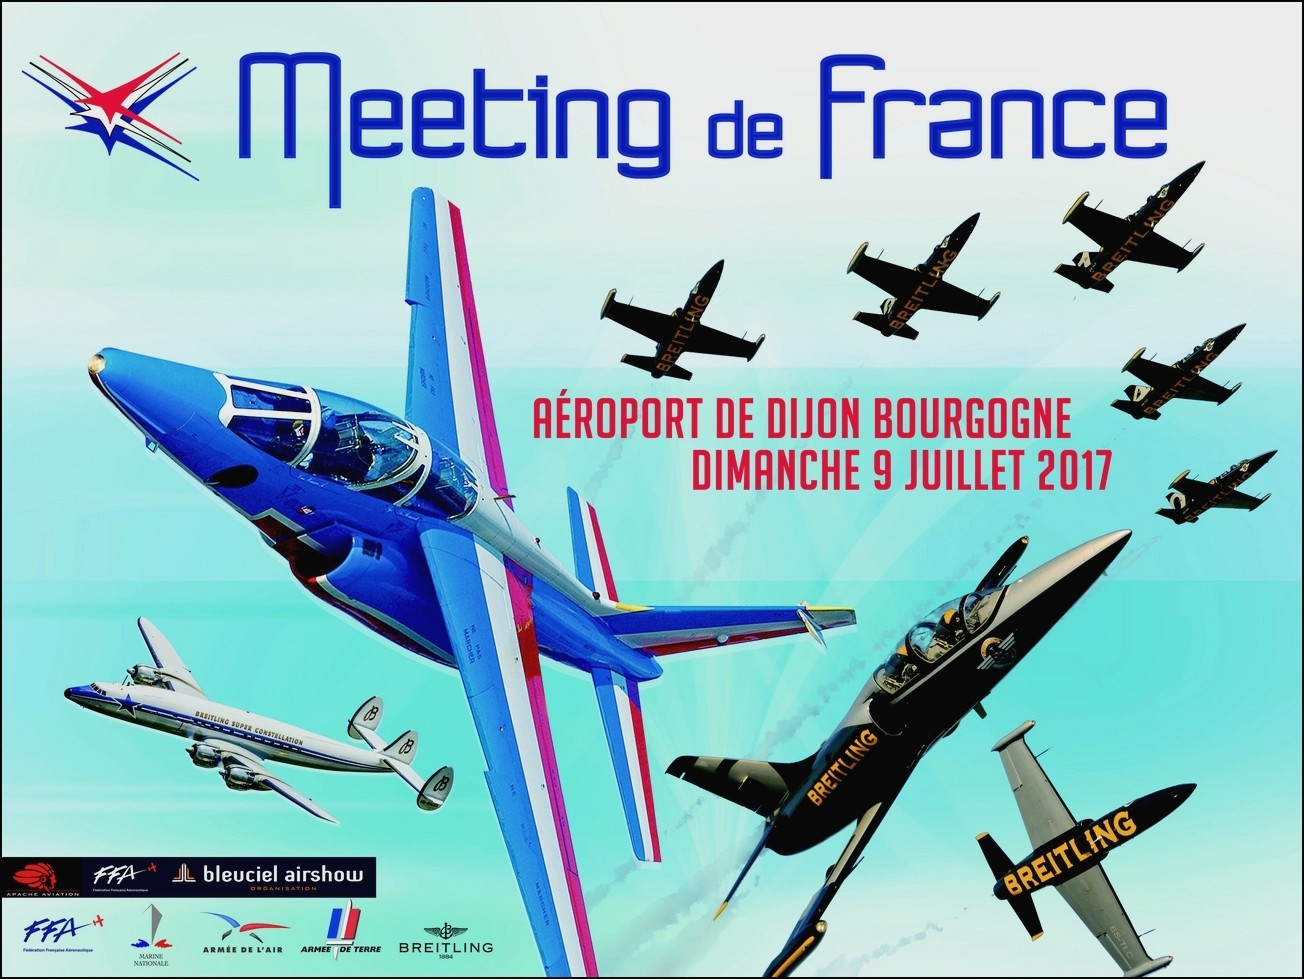 Meeting de France Dijon 2017 , aéroport Dijon-Bourgogne 2017 ,patrouille de france , breitling jet team , Rafale solo display , bleu ciel airshow 2017 , Meeting Aerien 2017, French Airshow 2017